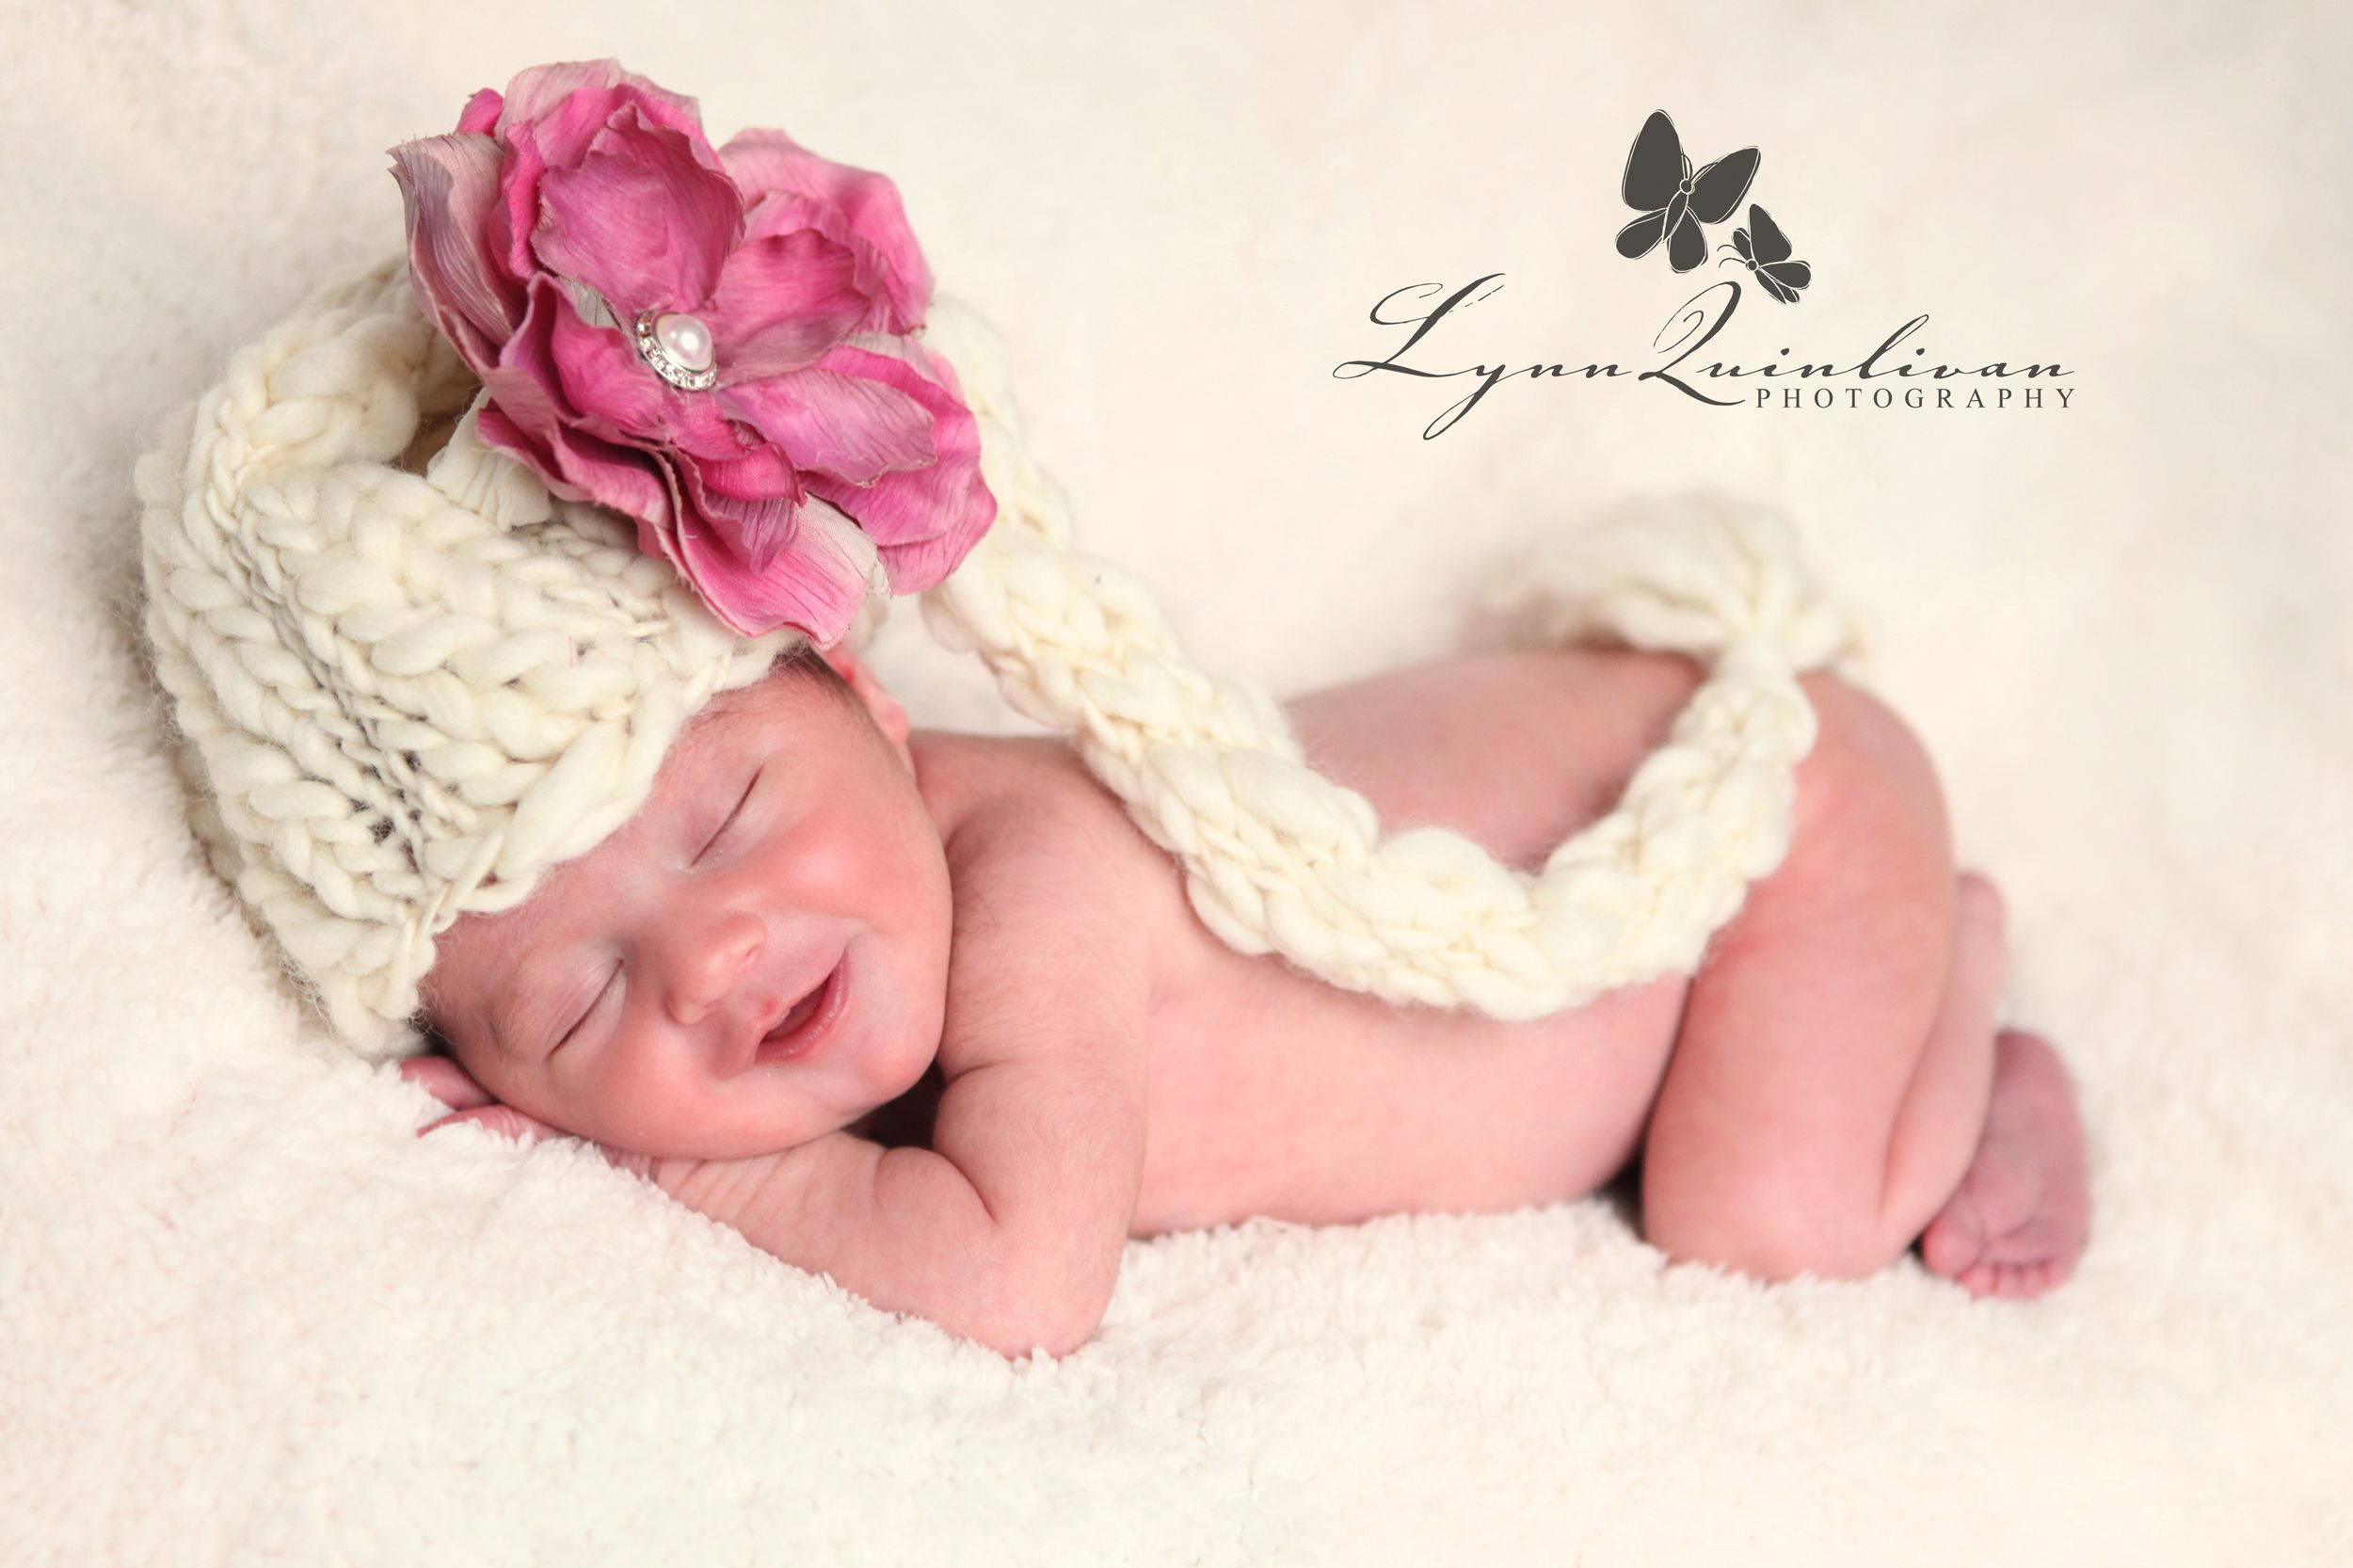 infant baby girl hats | ... Newborn Photographer Worcester MA Baby Girl With Smile Hat and Flower